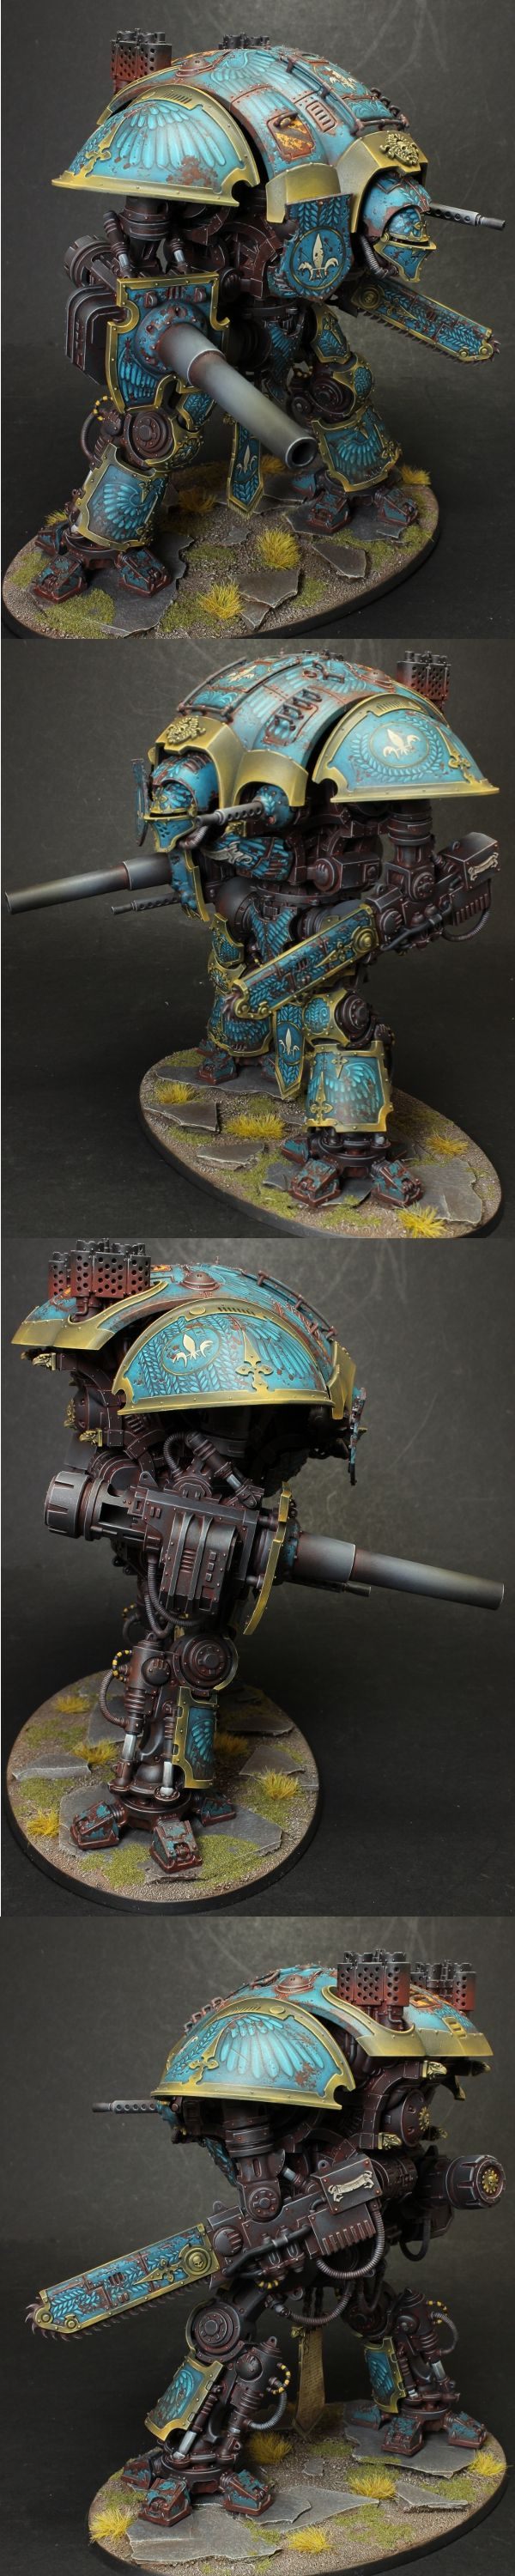 The work on this Imperial Knight is absolutely stunning and I wish I could paint freehand like this